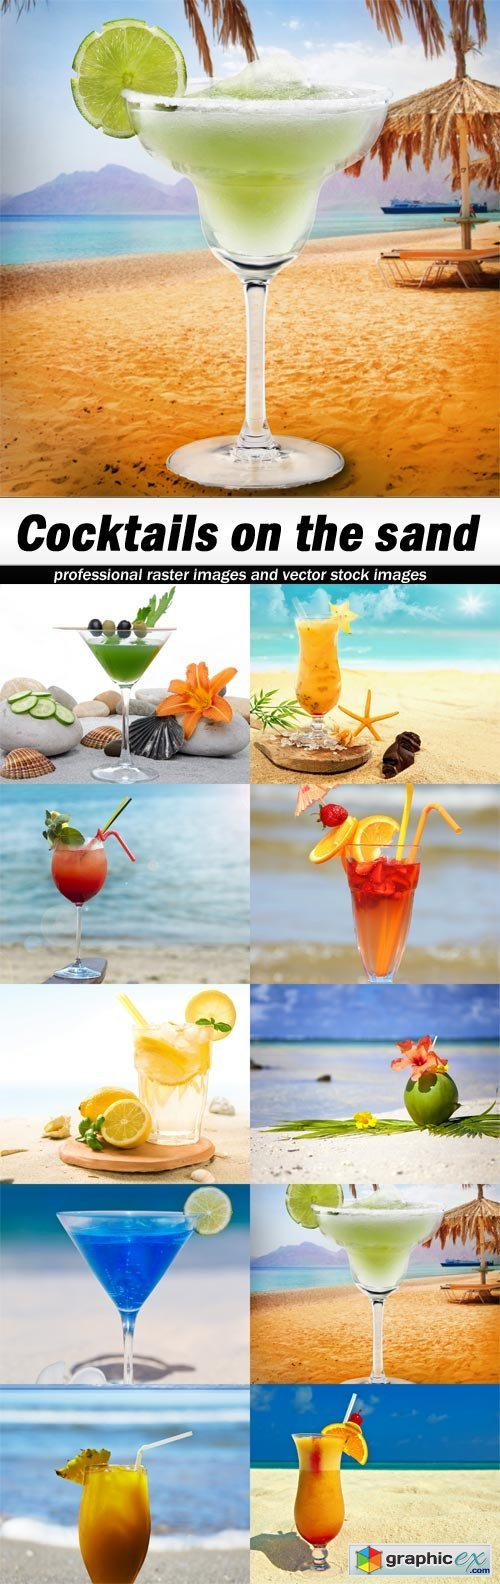 Cocktails on the sand